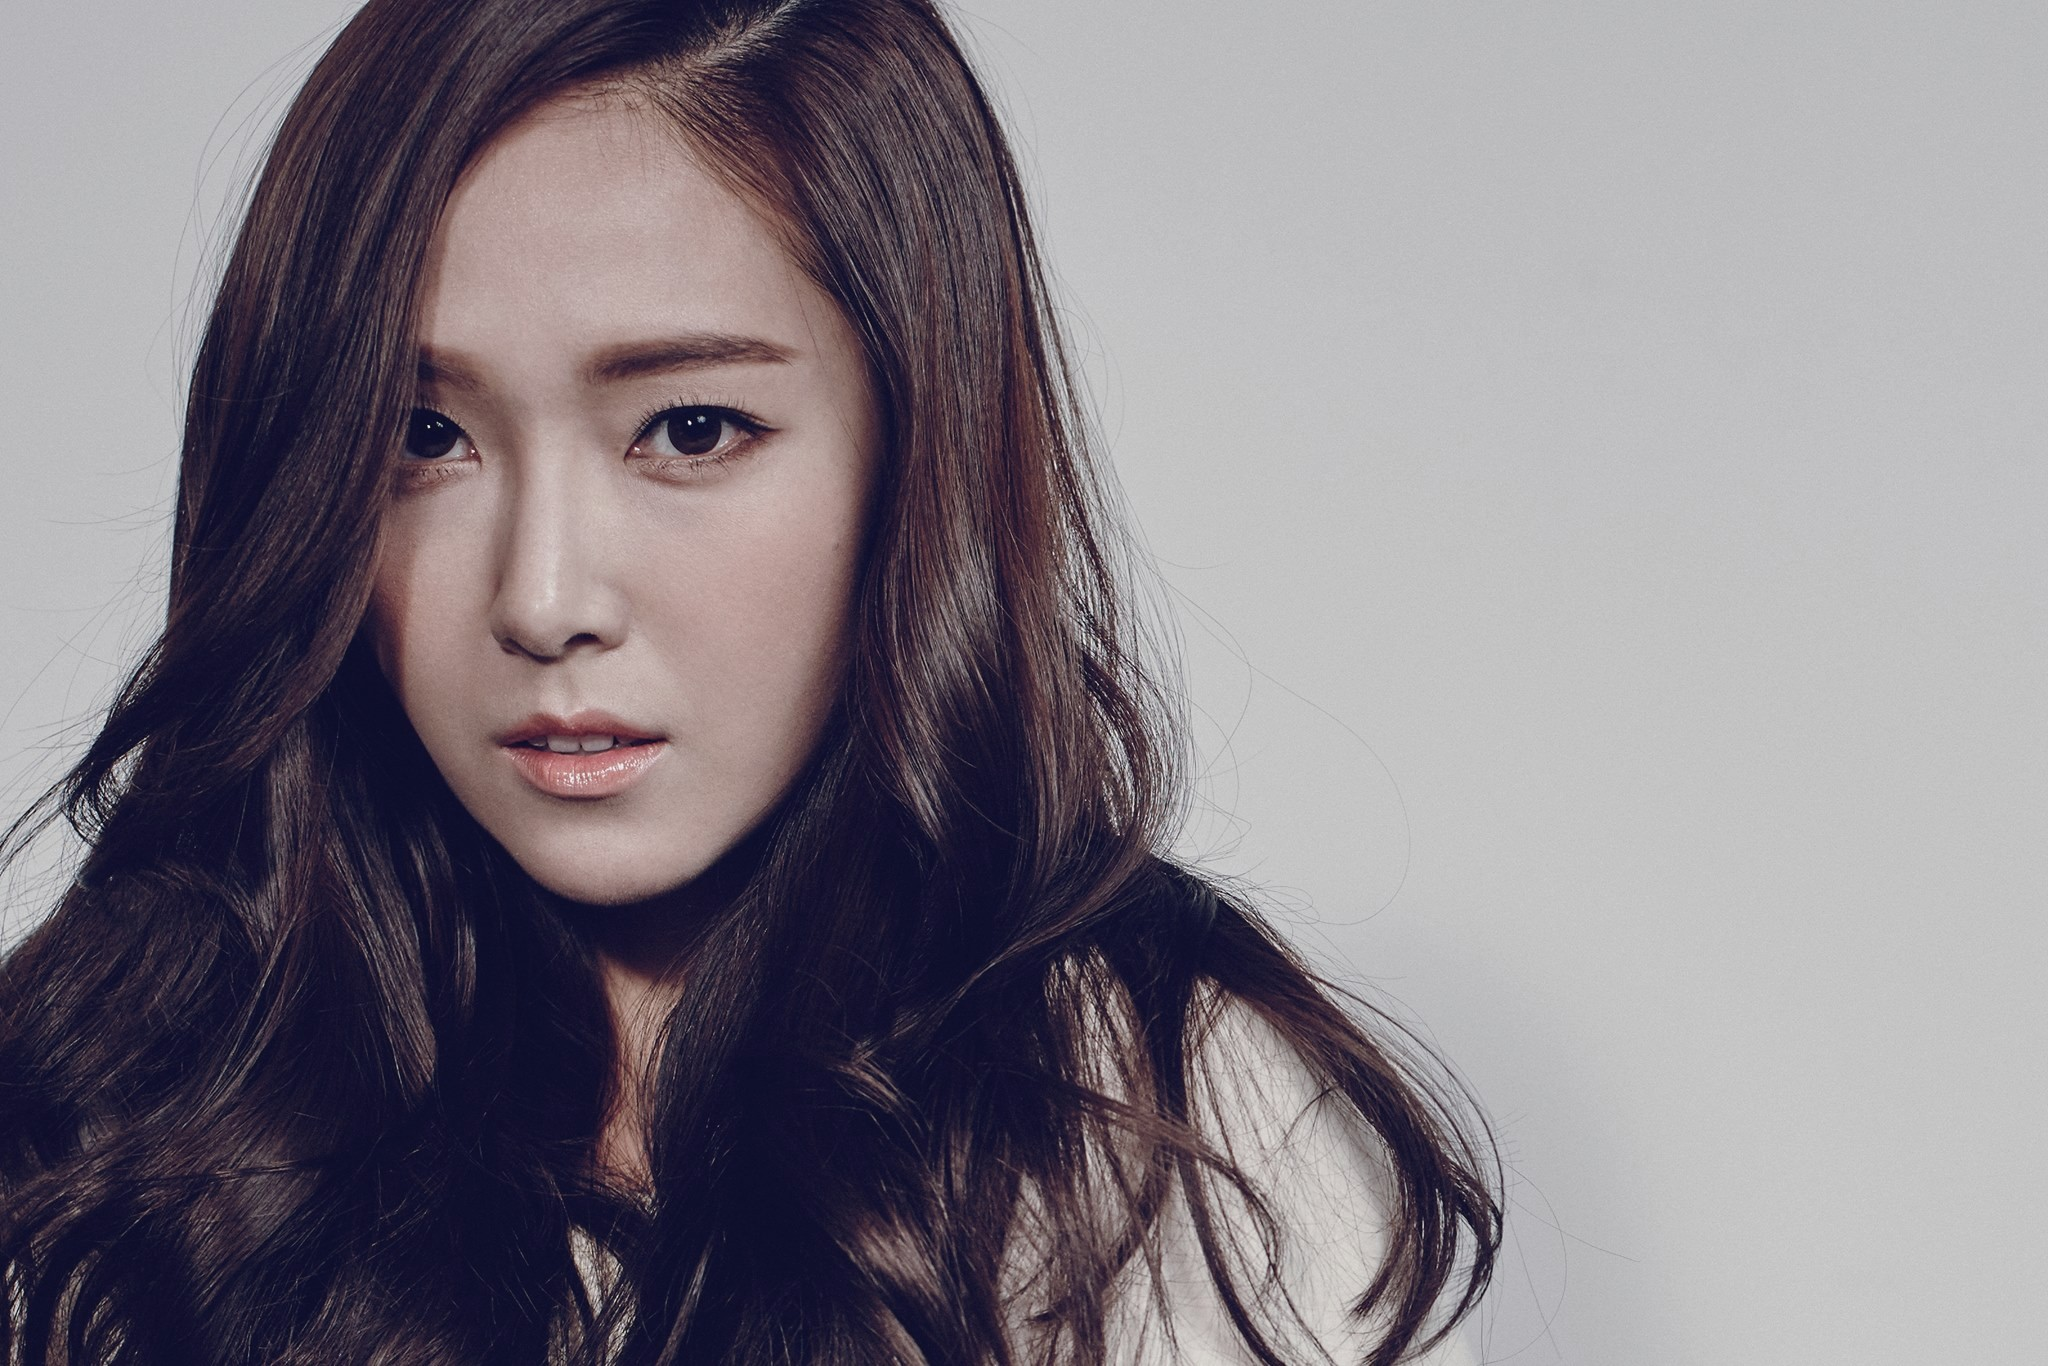 jessica jung computer wallpaper 55755